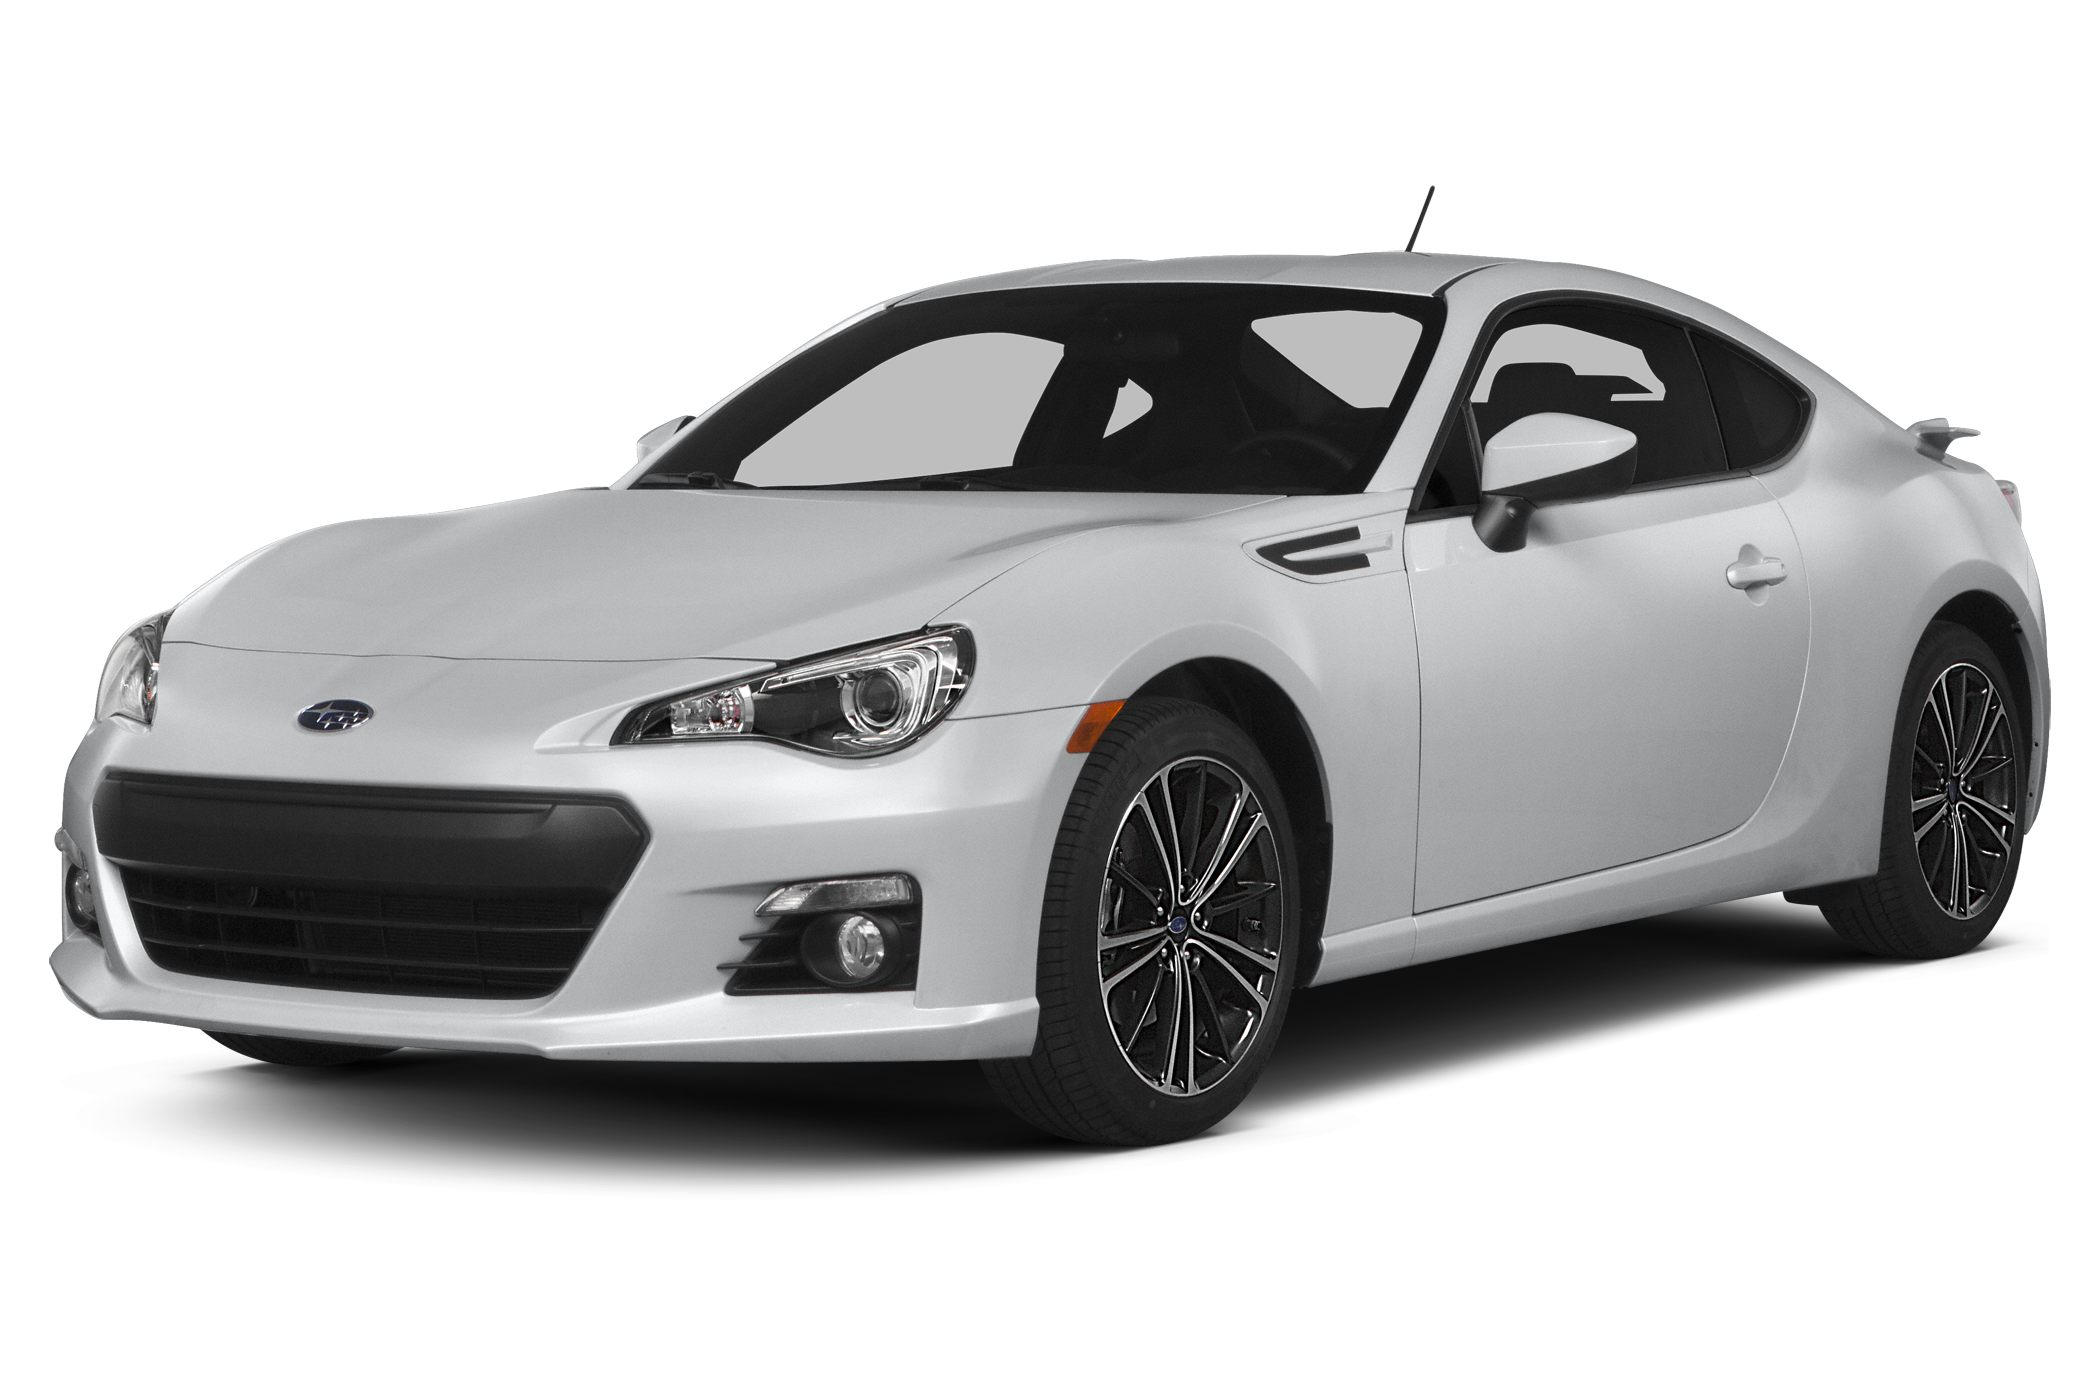 2014 Subaru BRZ Premium Coupe for sale in Vernon for $26,442 with 0 miles.